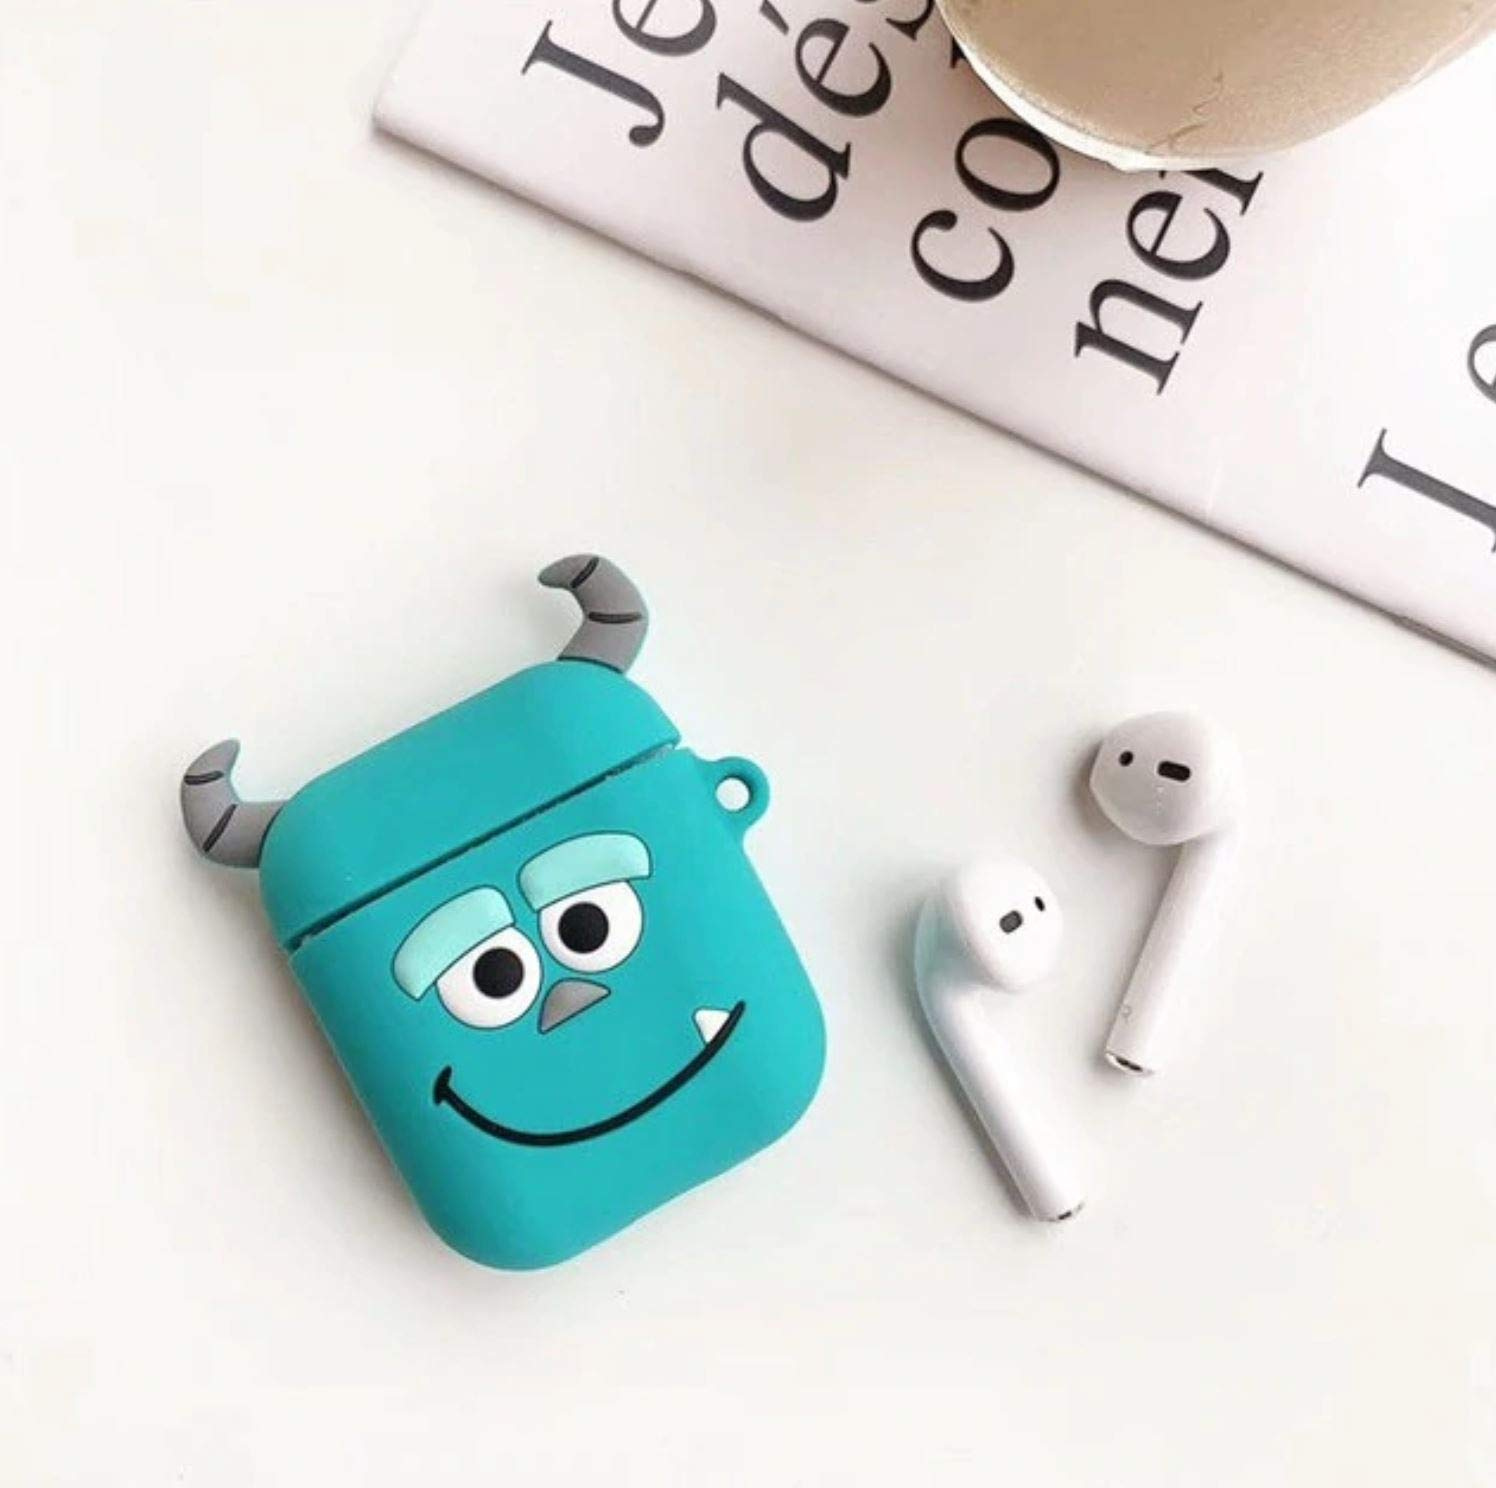 Airpod Case Airpod Accessories Shockproof Protective Premium Silicone Cover and Skin for Apple Airpod Charging Case 3D Cute Cartoon Case for Apple Airpod 1/&2